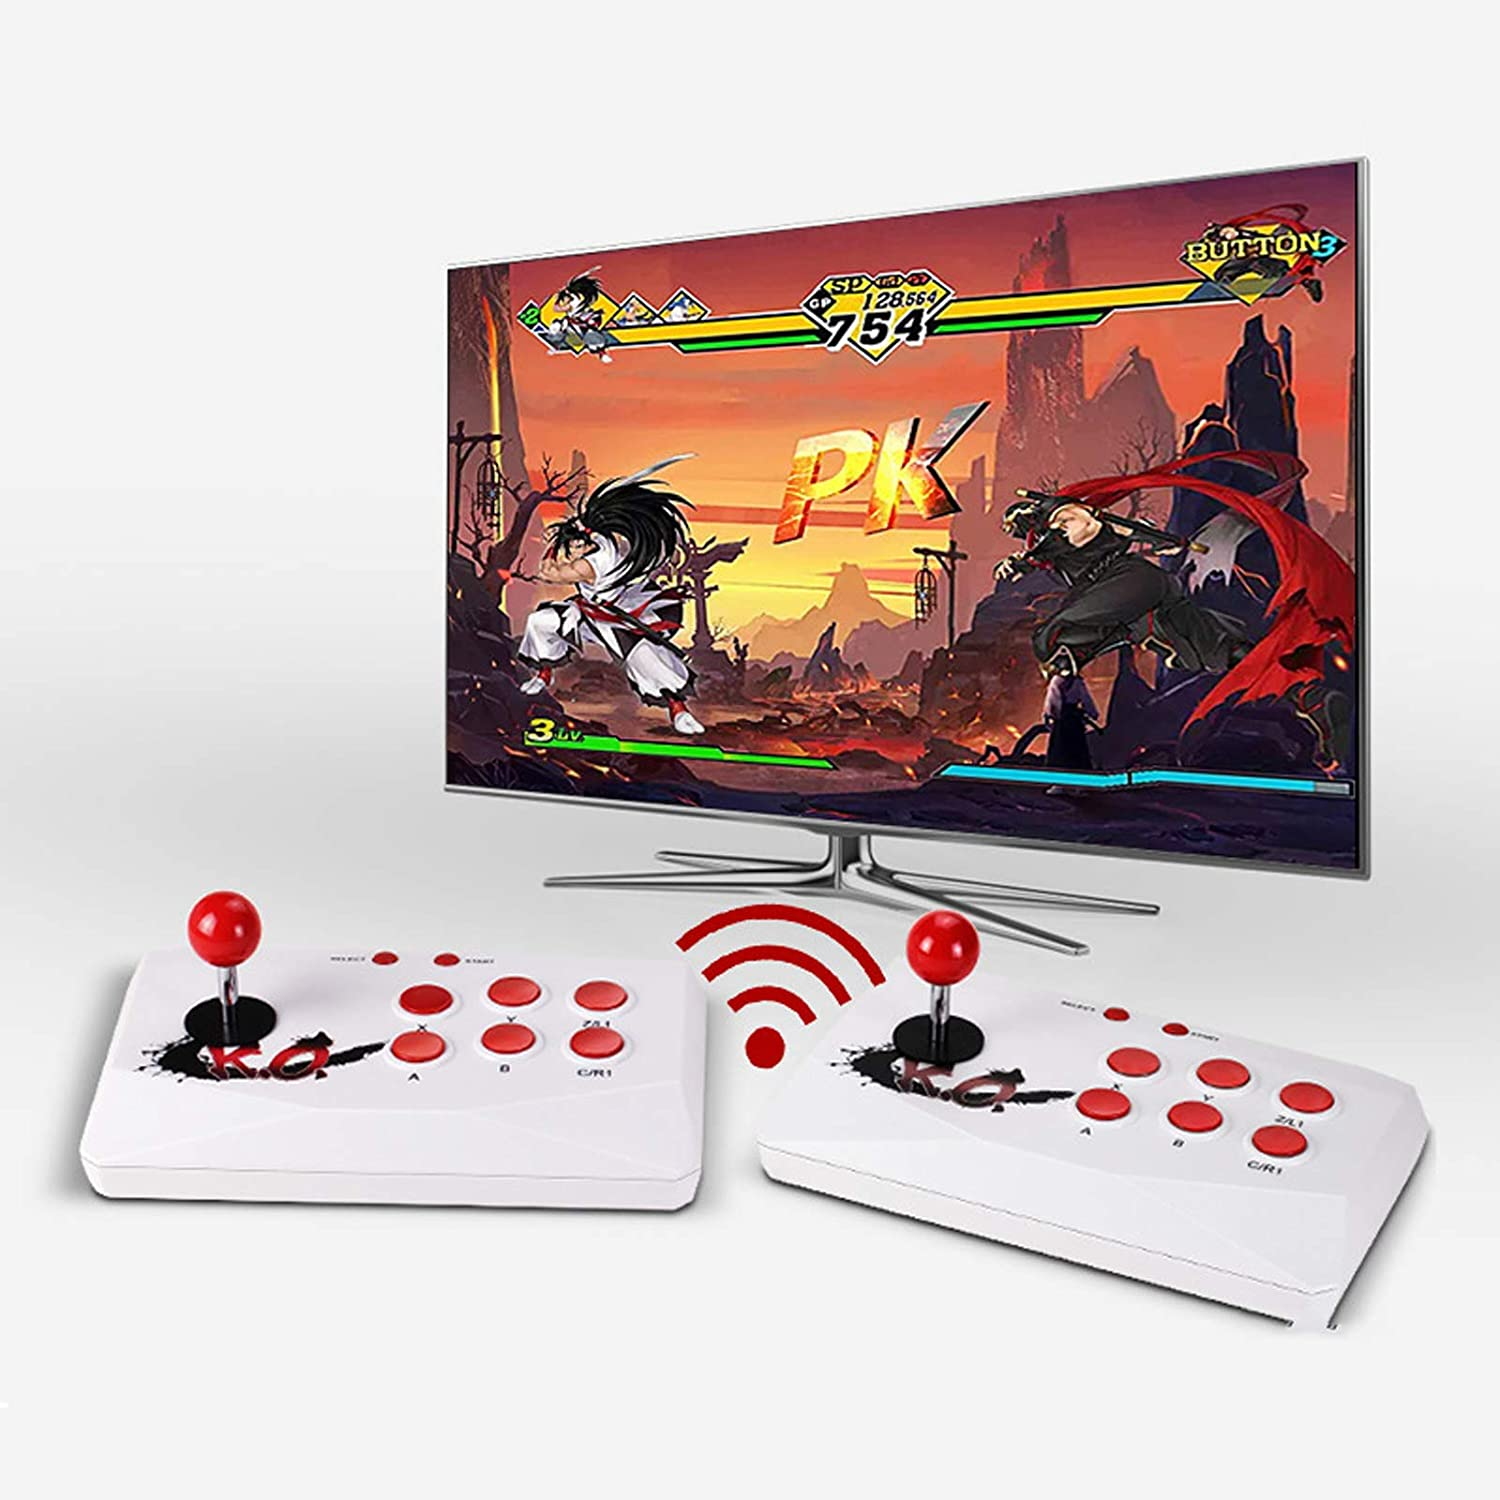 1788 High order Games 2.4G Wireless Arcade Video TF Card free Ext Console Game